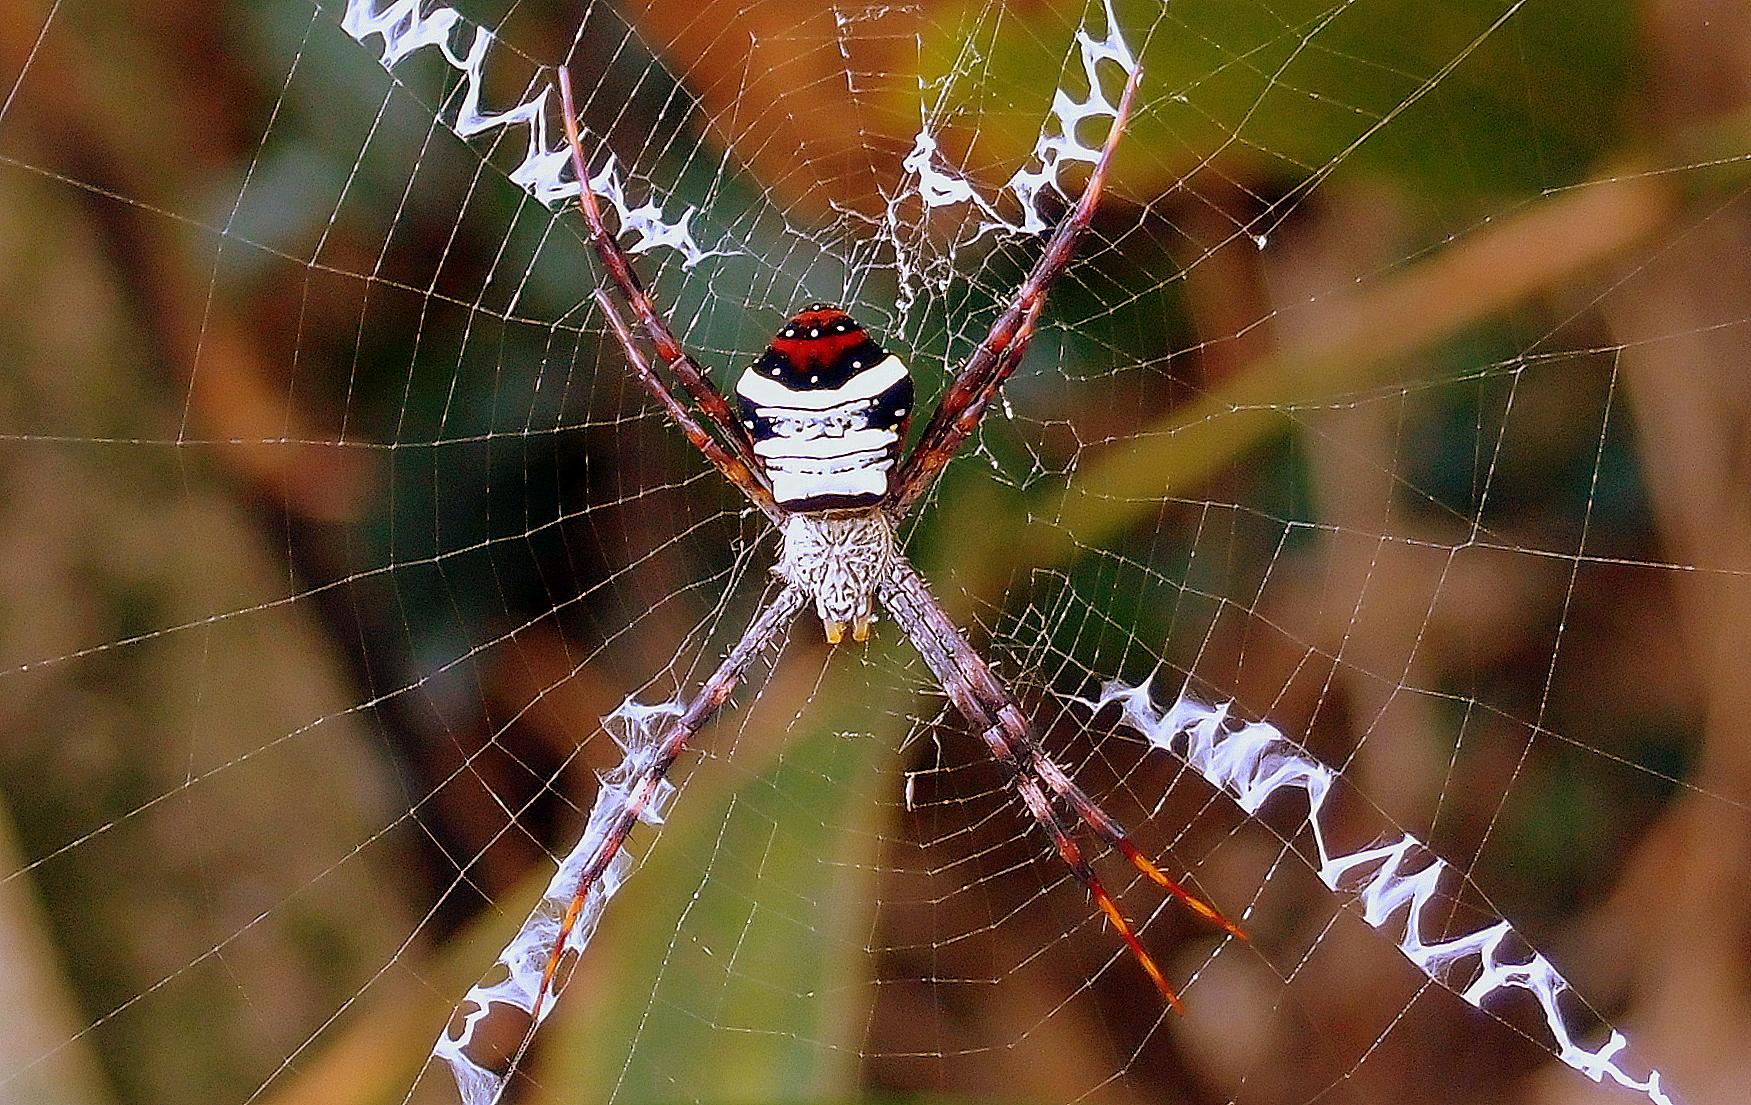 The   smiley face   spider